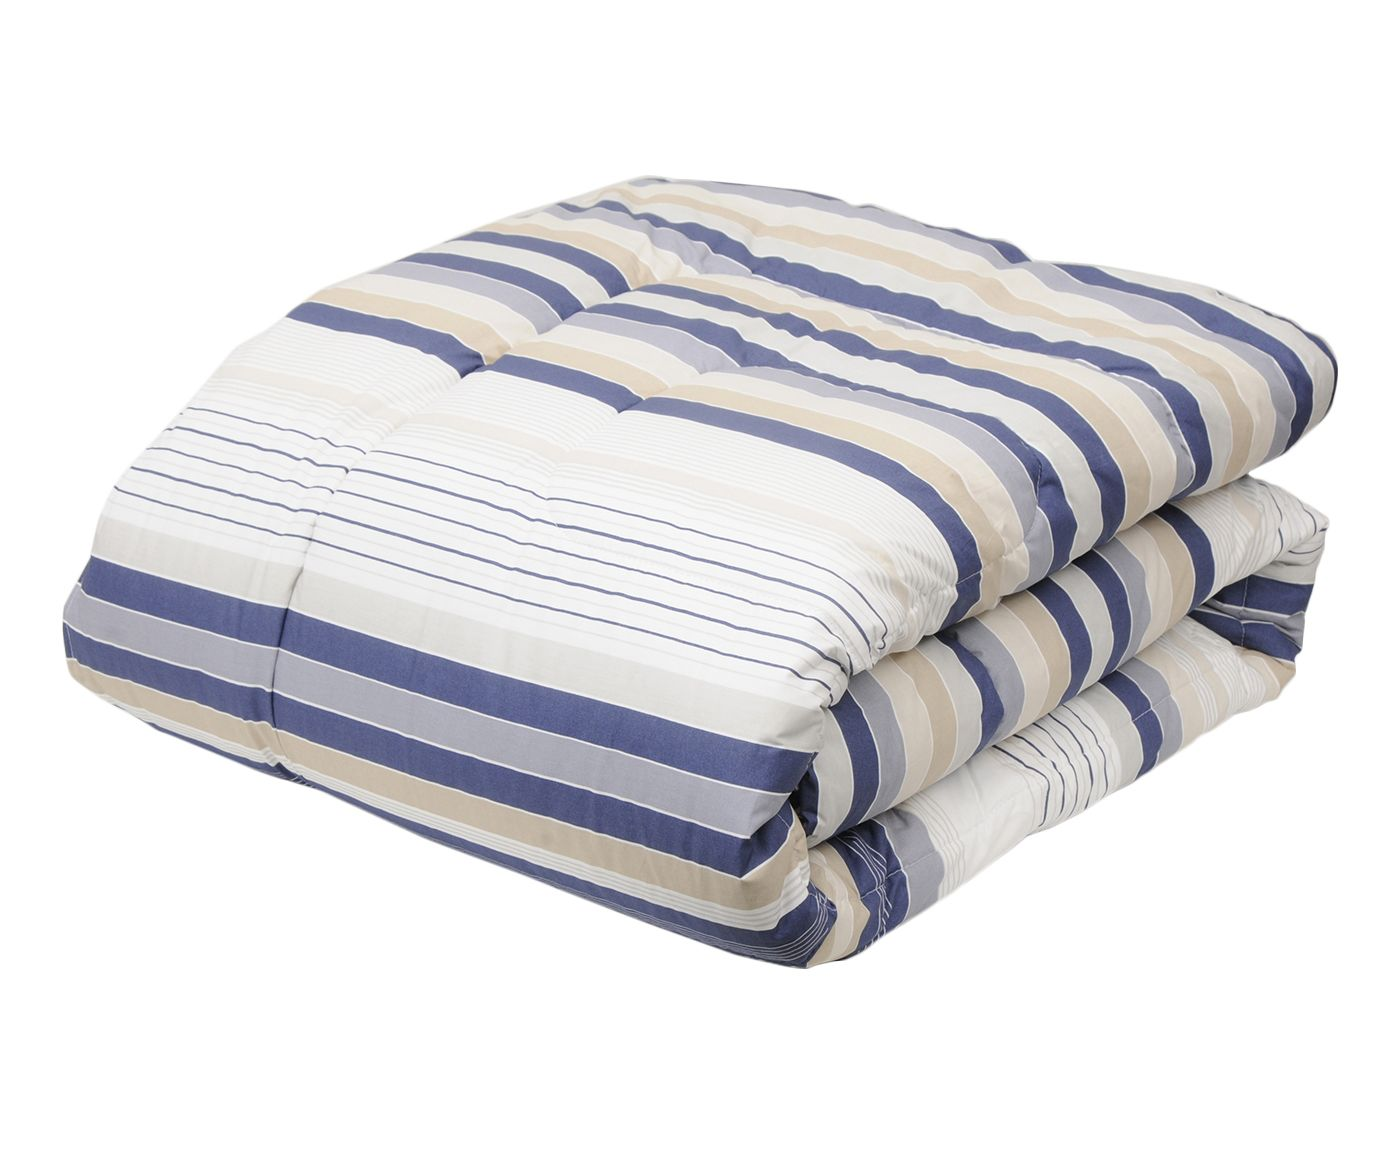 Edredom Dupla Face Pietro 200 Fios - Queen Size | Westwing.com.br